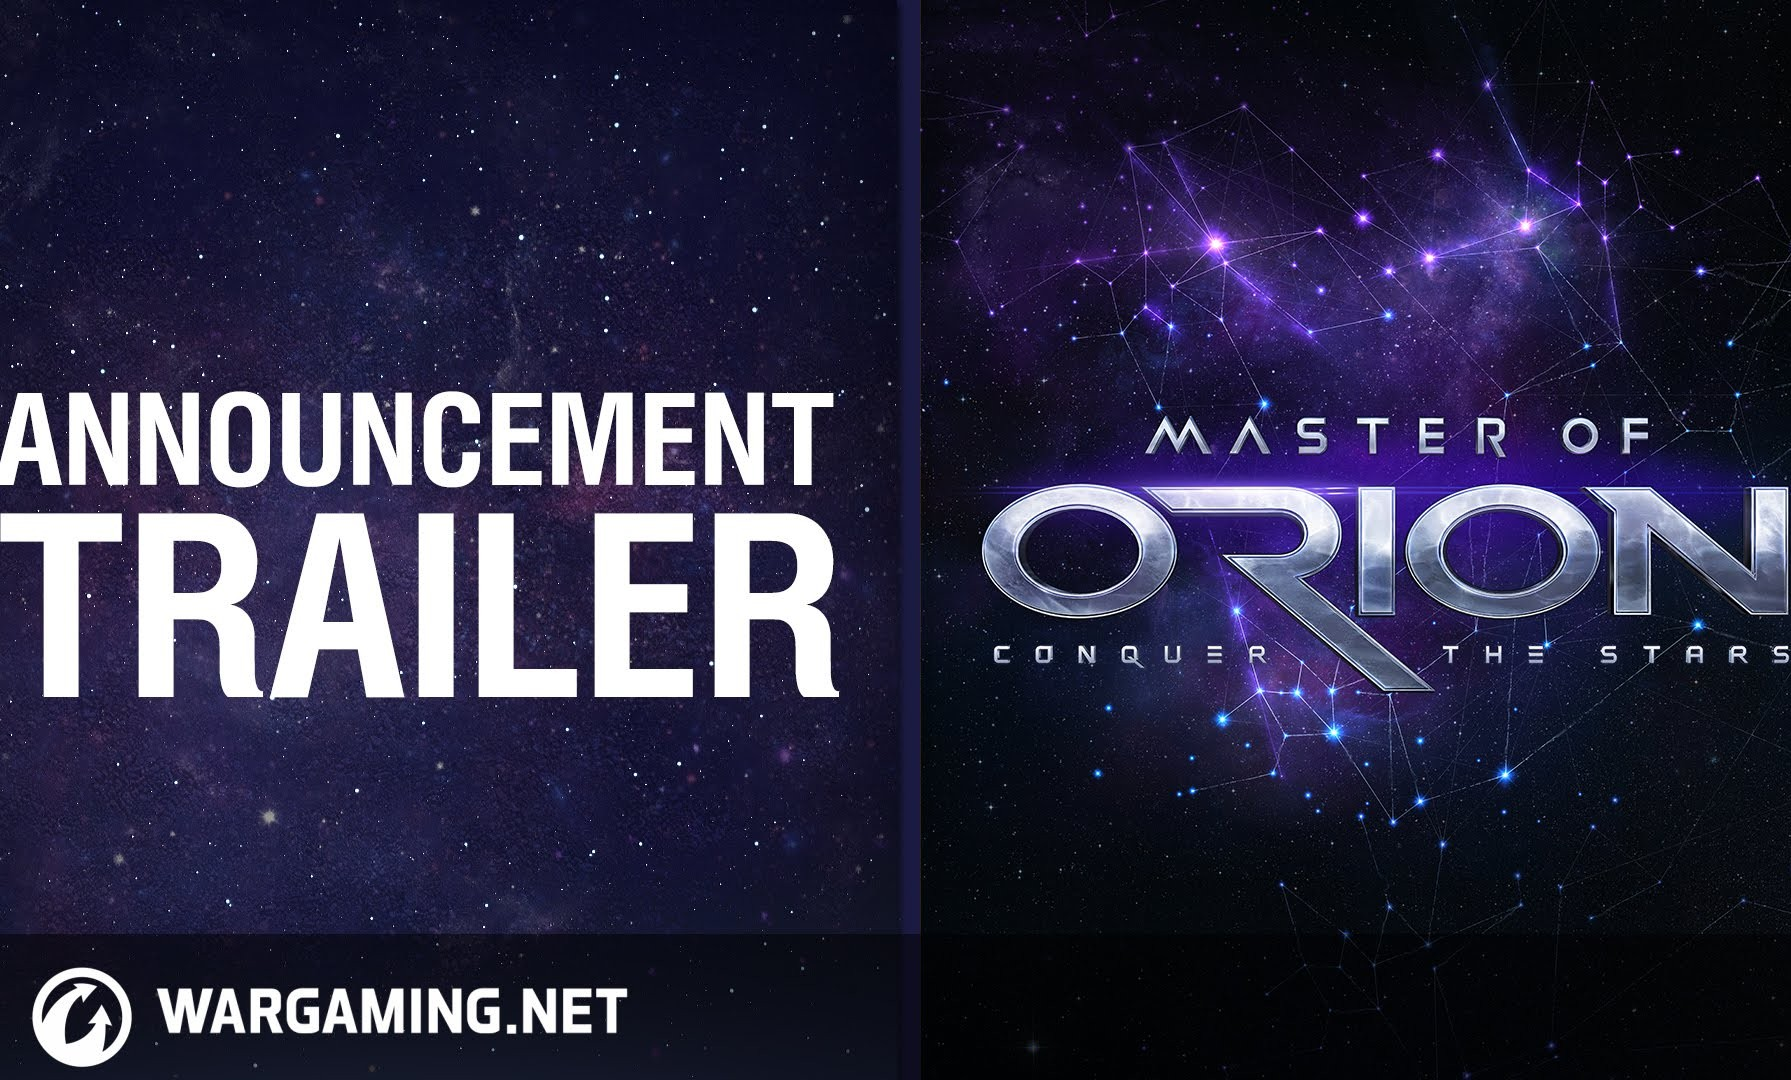 REMAKE DE MASTER OF ORION EN MARCHA